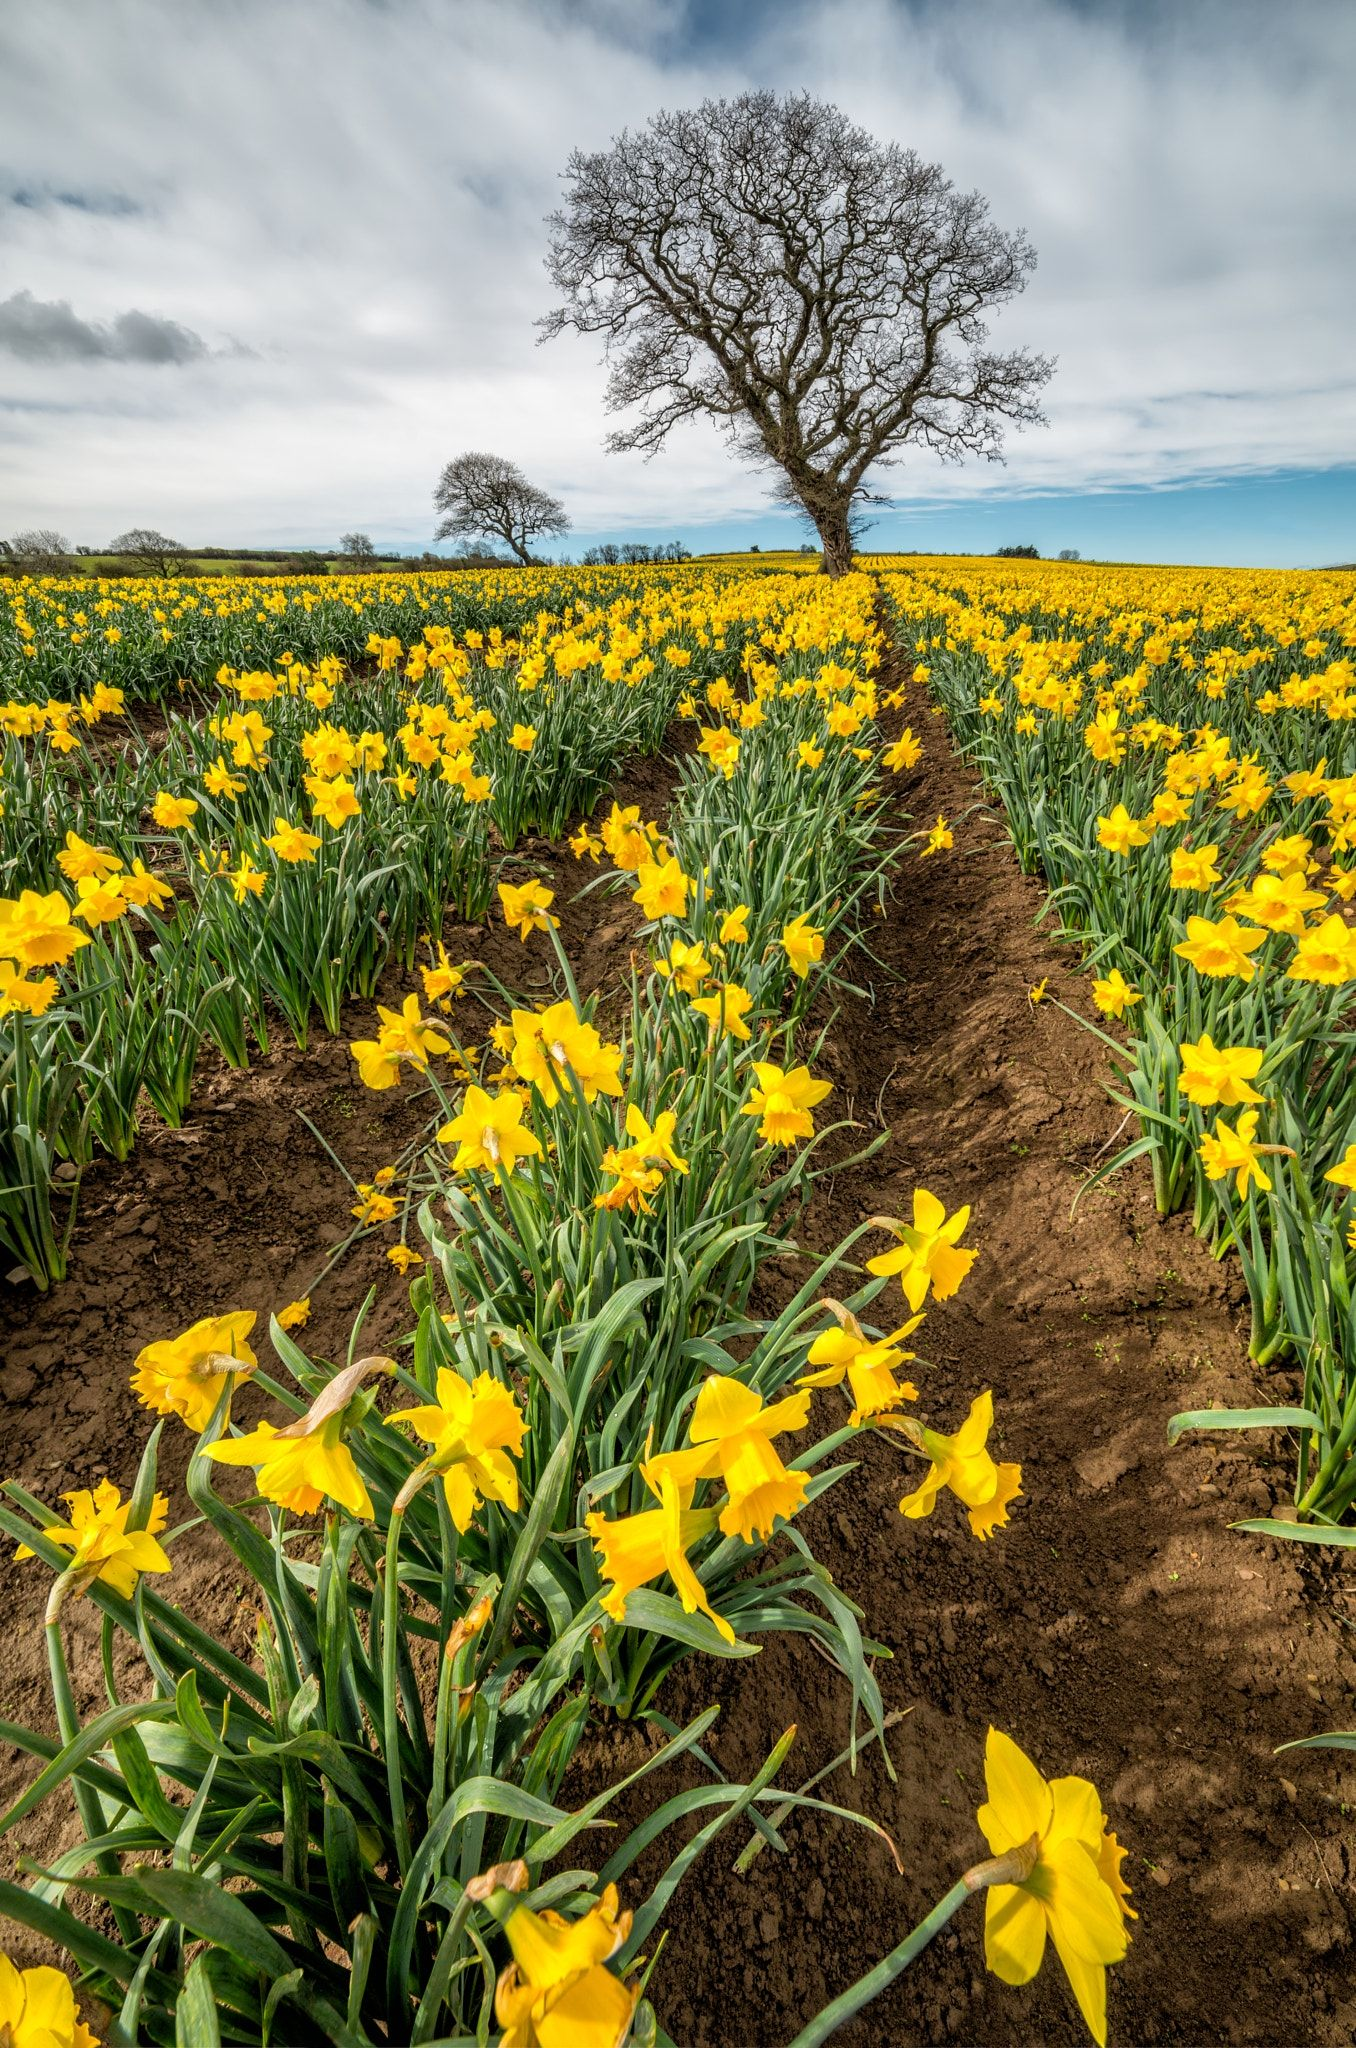 Rows Of Daffodils Trees In A Field Of Daffodils Spring Time In Wales Uk Daffodils Flower Field Beautiful Flowers